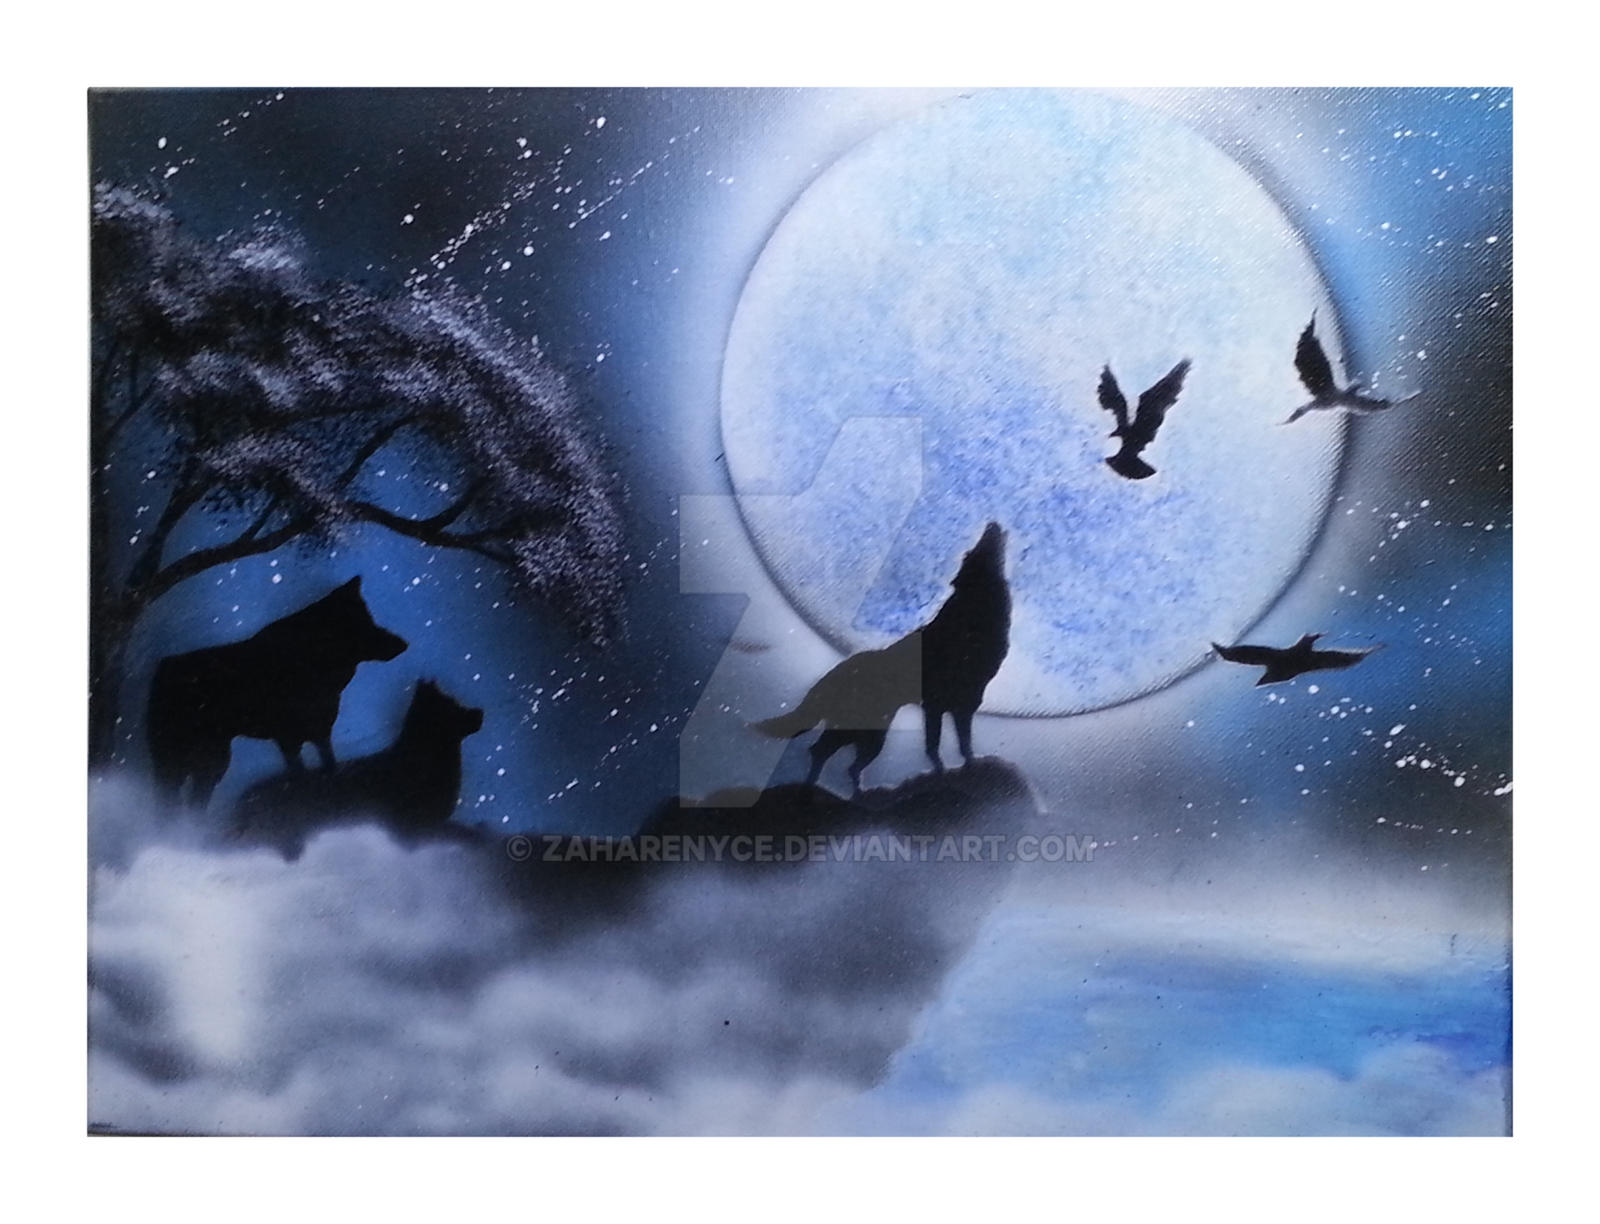 Howling wolf spray paint painting by zaharenyce on deviantart for How to spray paint art on canvas